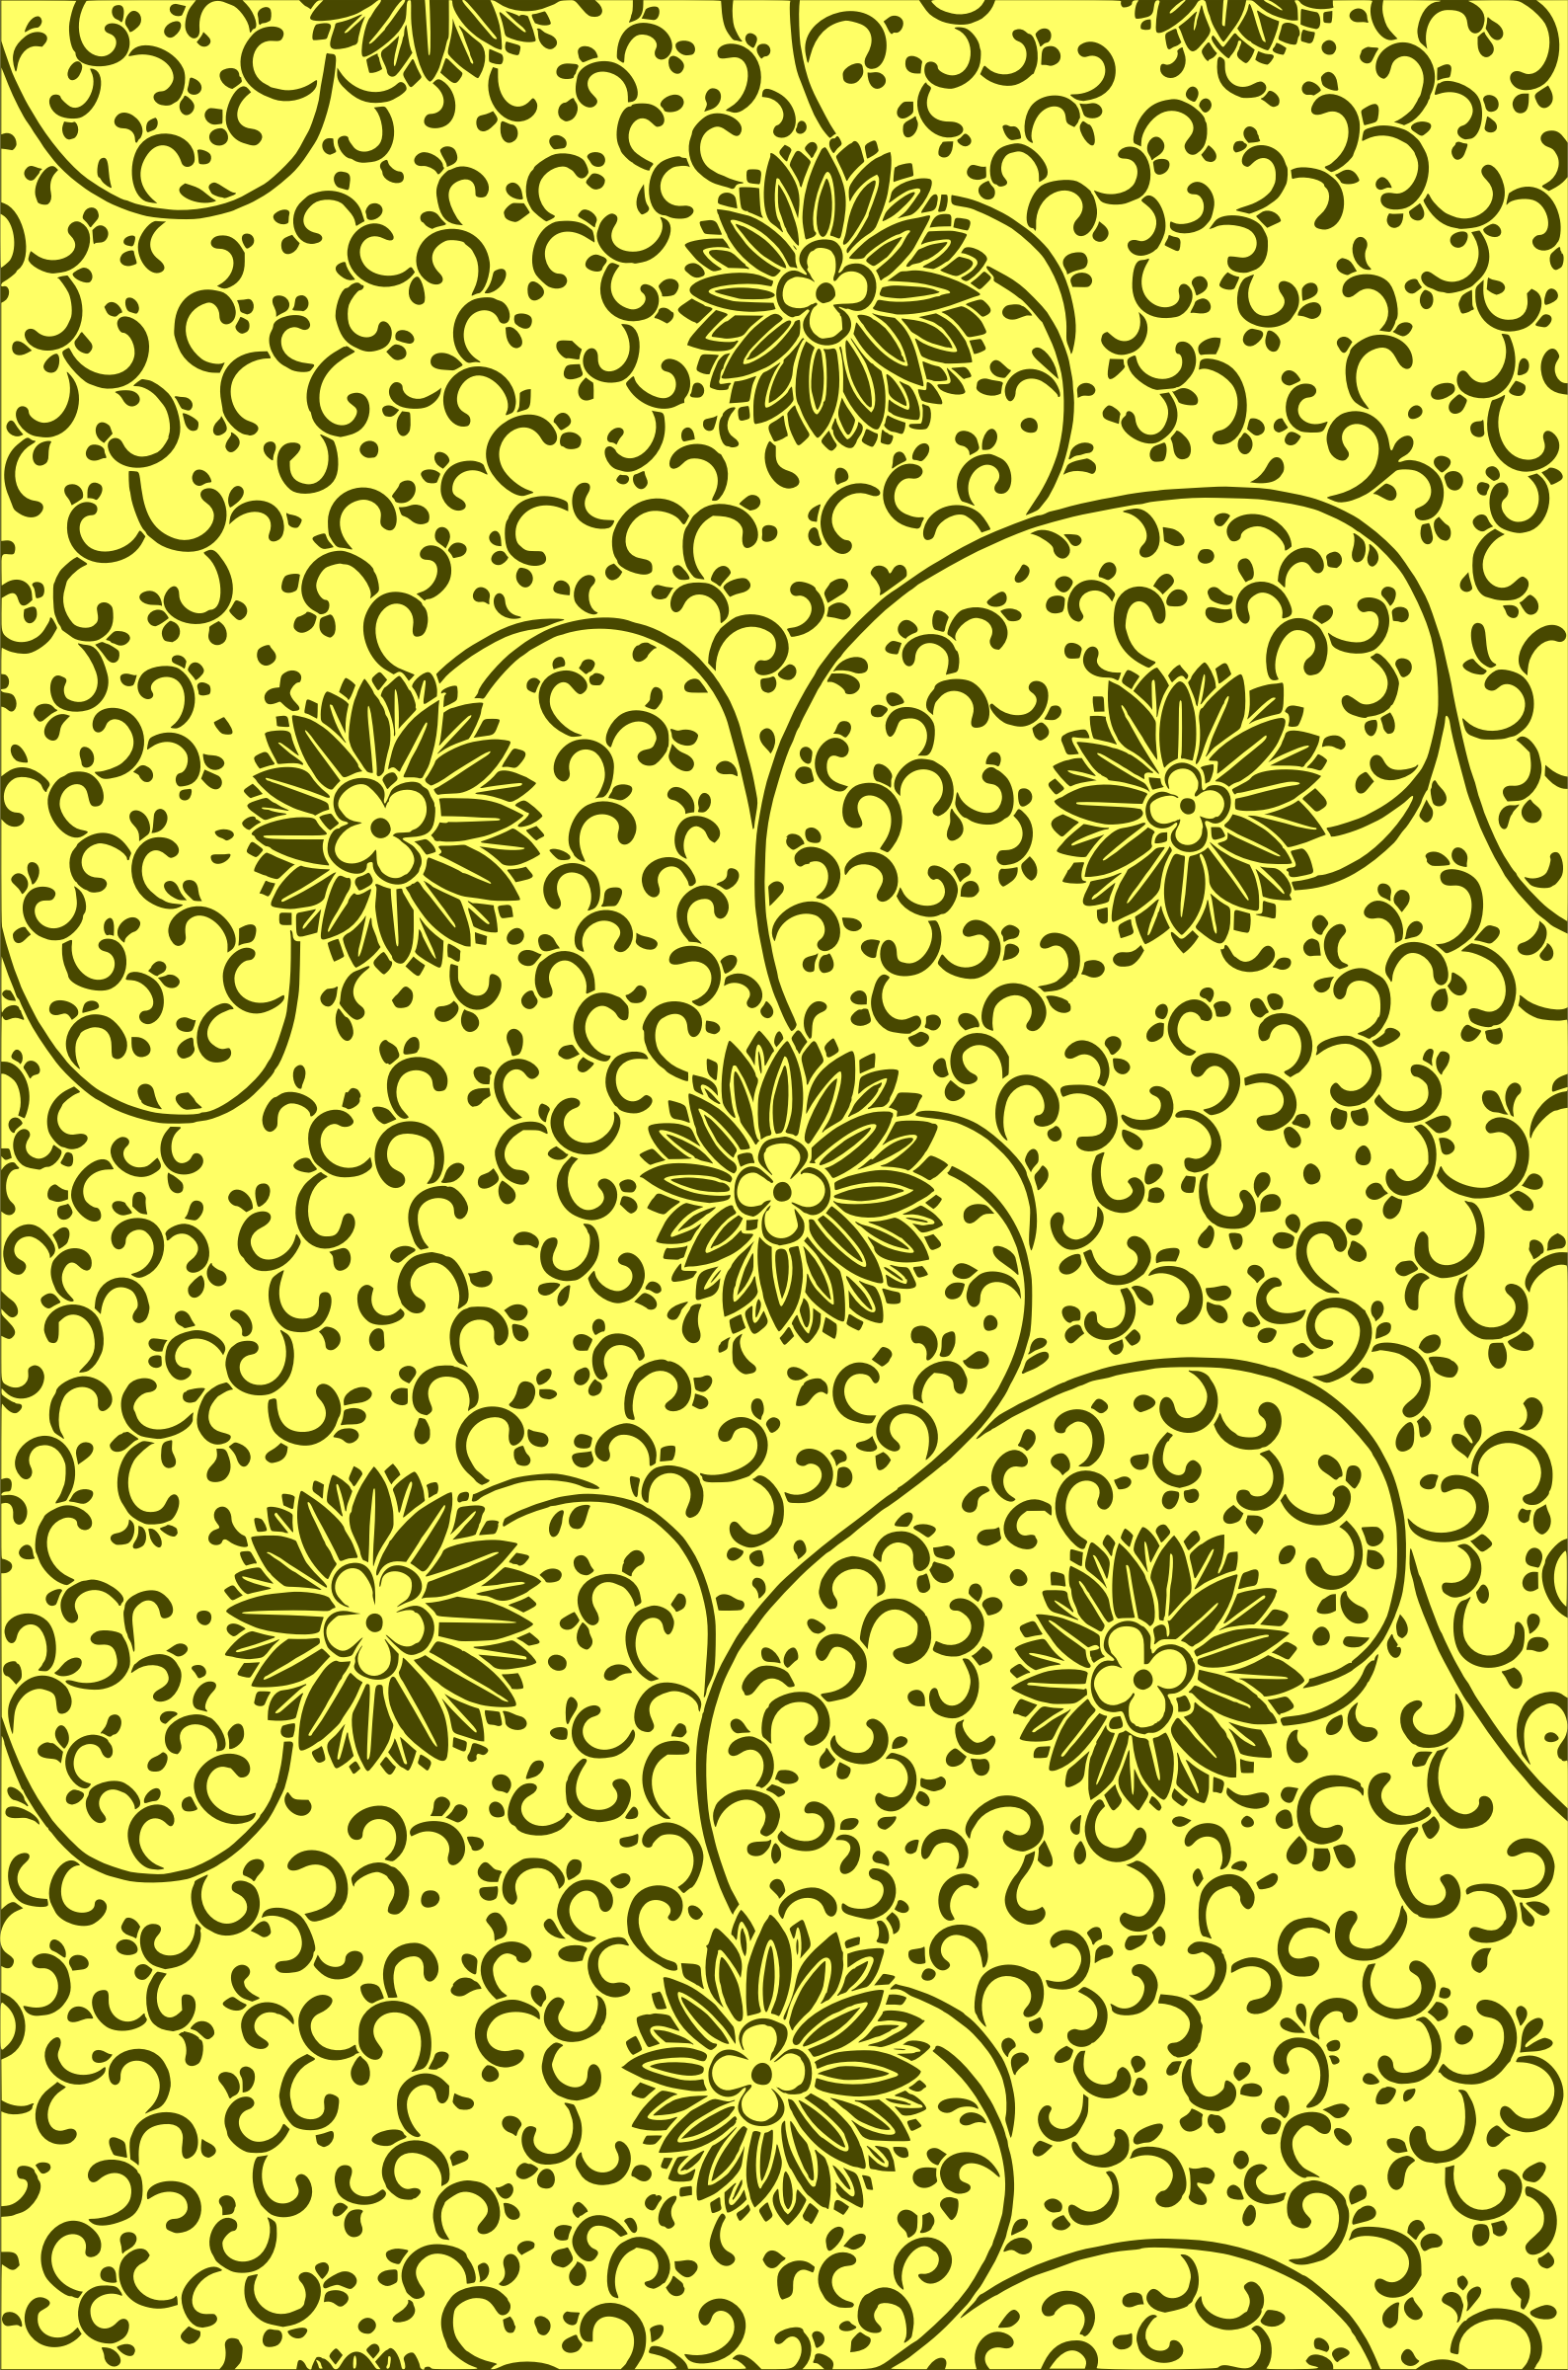 Floral pattern 2 (colour 4) by Firkin